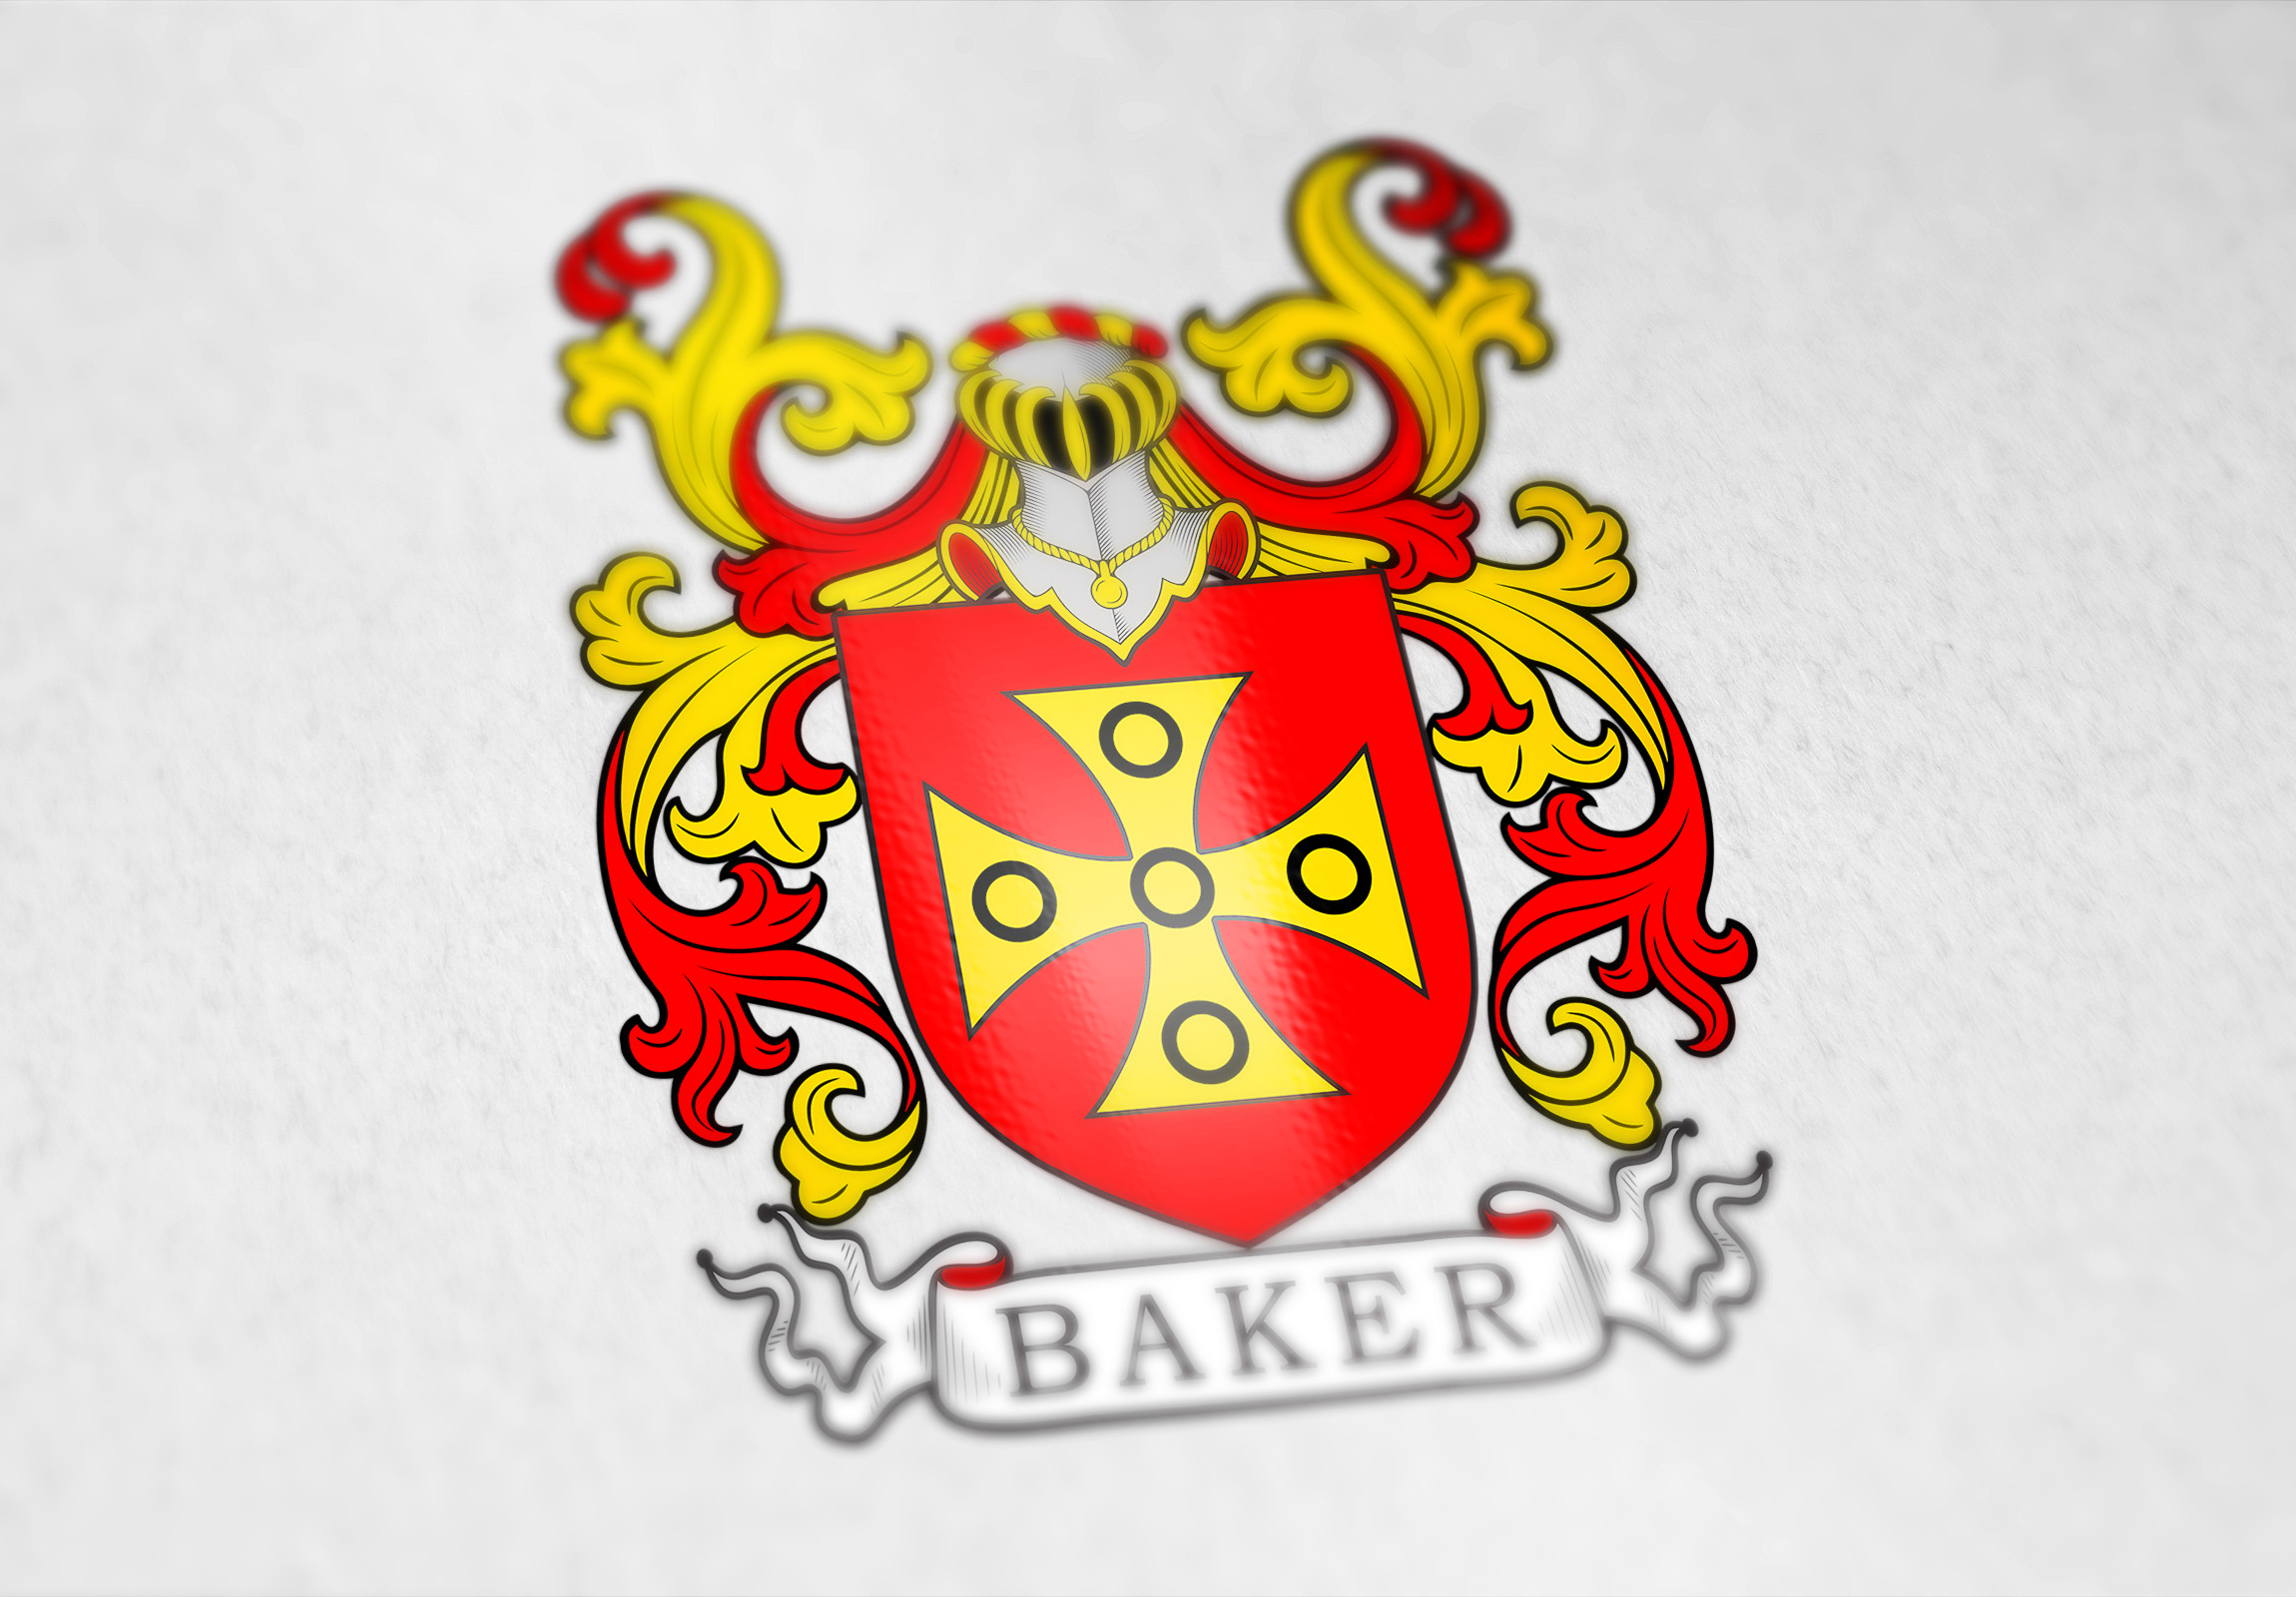 baker-family- oat-of-arms